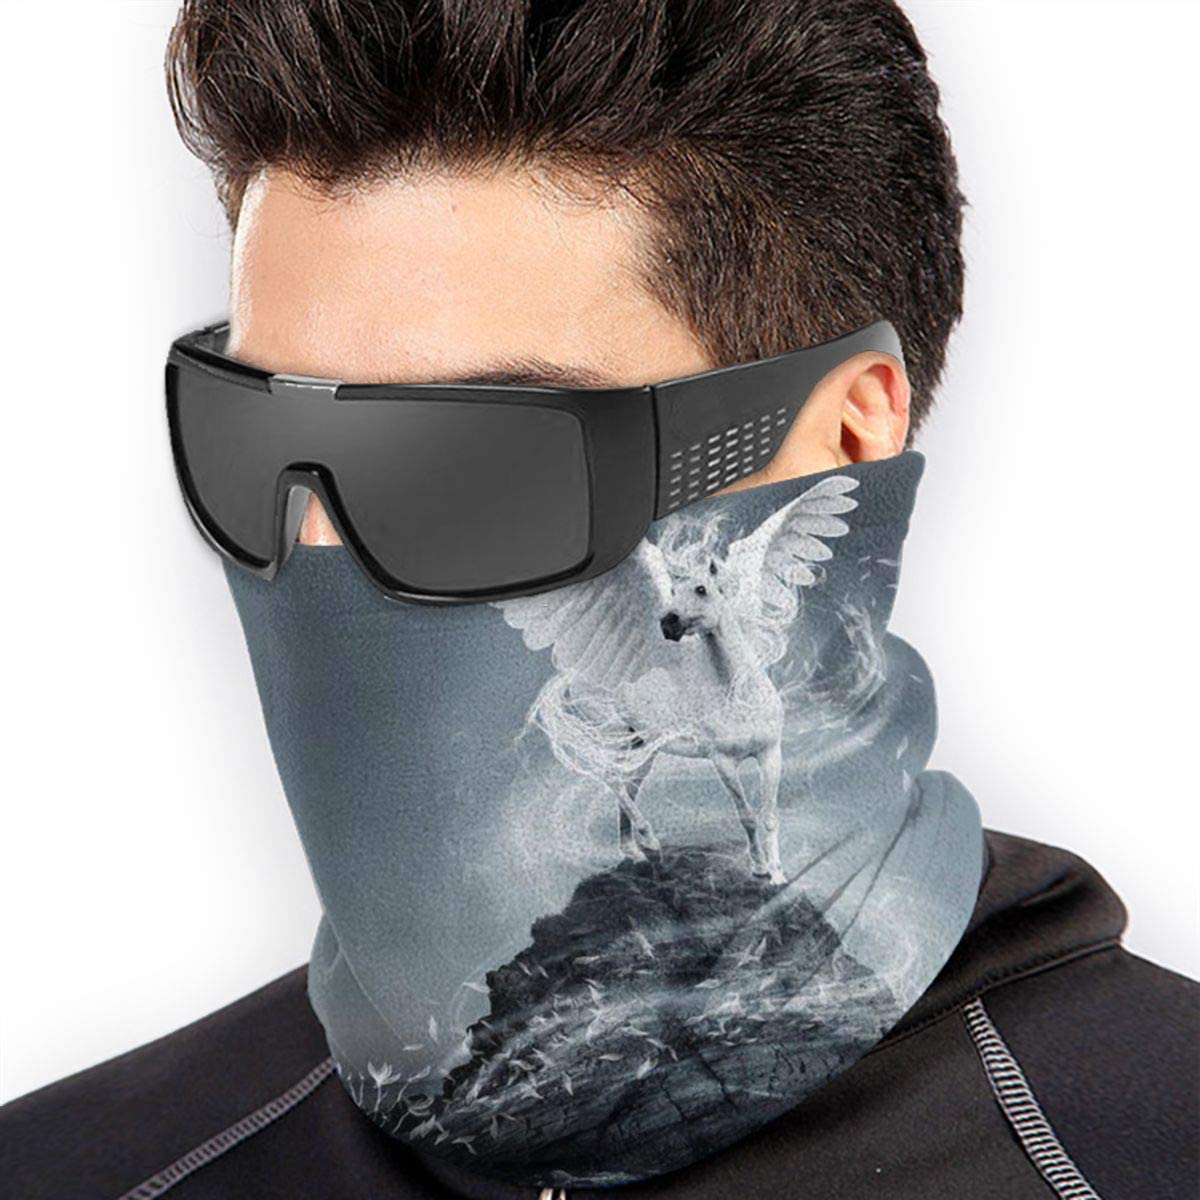 Pegasus Neck Gaiter Headwear Headband Head Wrap Scarf Mask Neck/Ear Warmers Headbands Perfect For Winter Fishing, Hiking, Running, Motorcycle Etc& Daily Wear For Men And Women